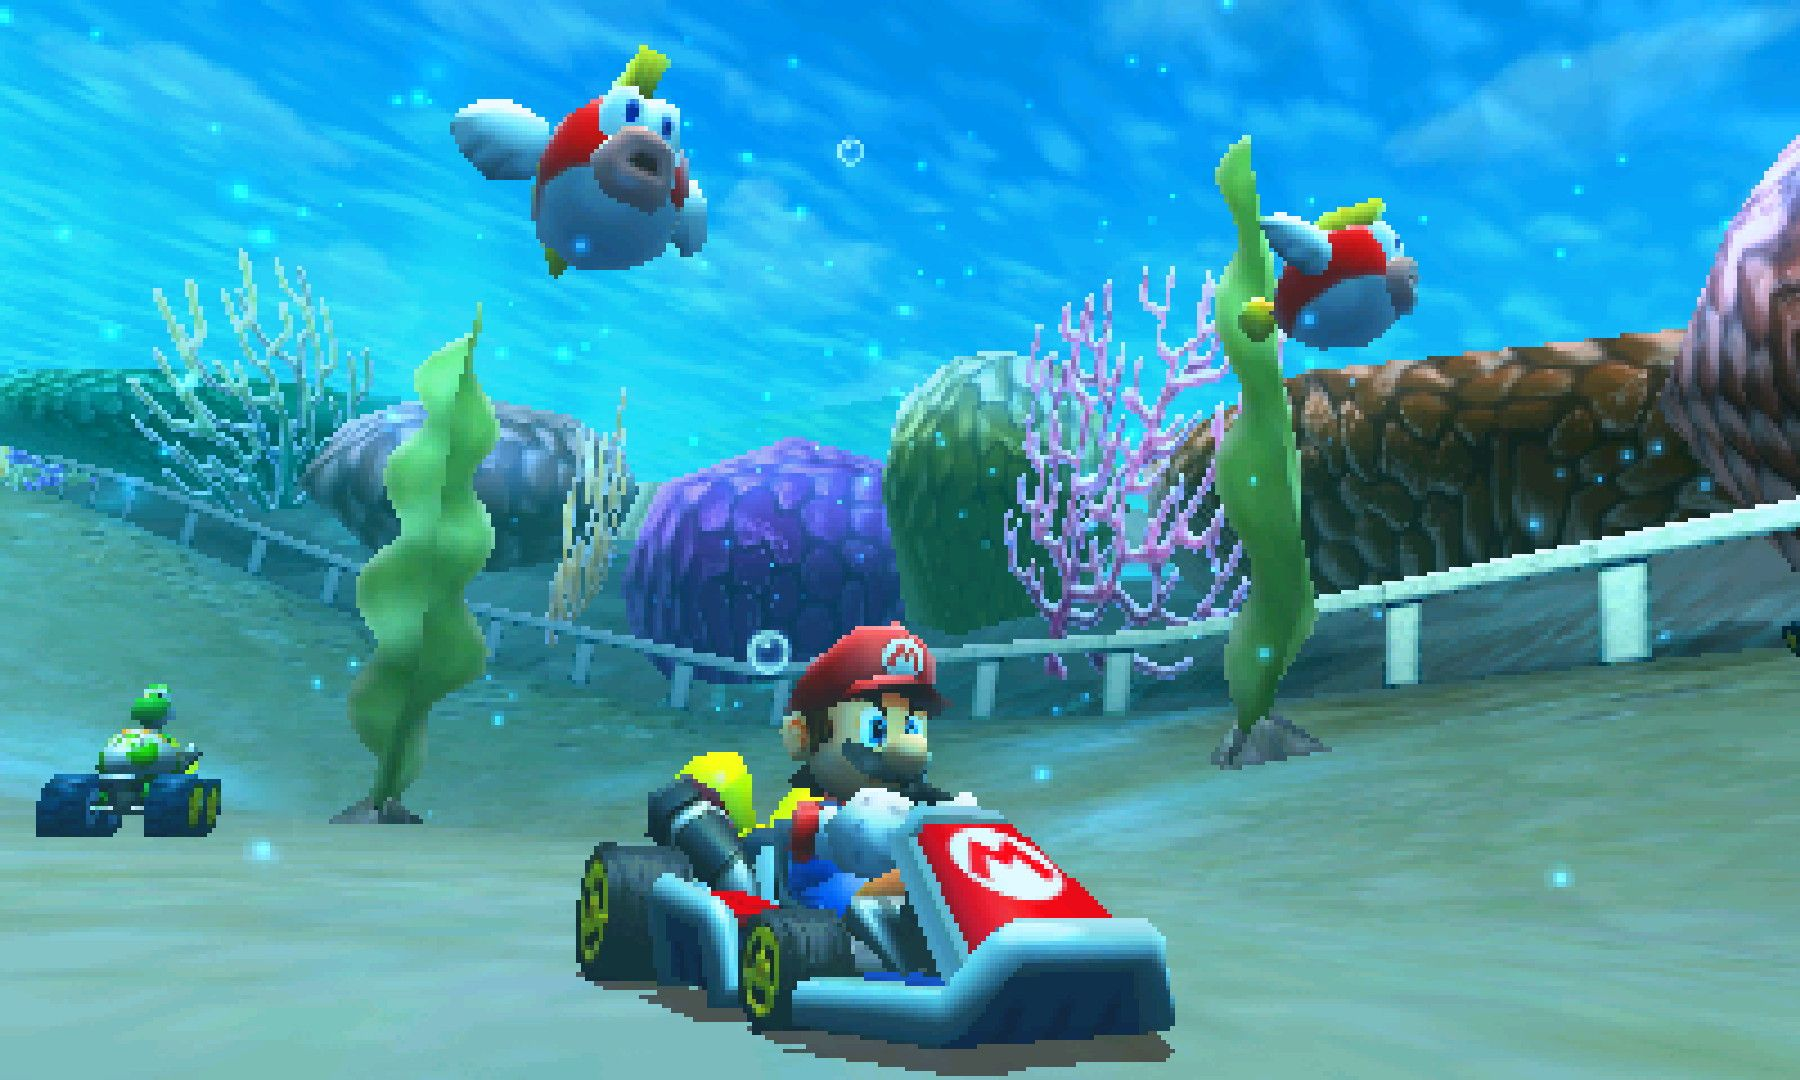 'Mario Kart' to go mobile next fiscal year